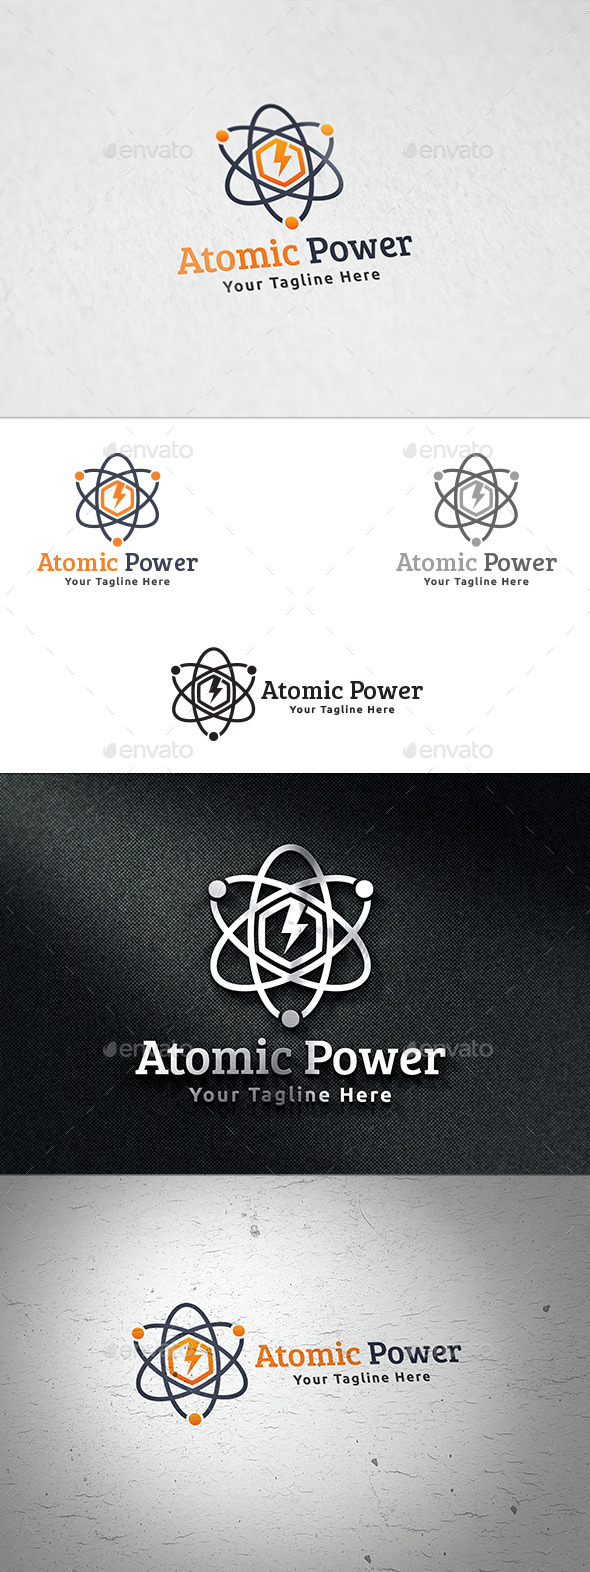 GraphicRiver Atomic Power Logo Template 11780953